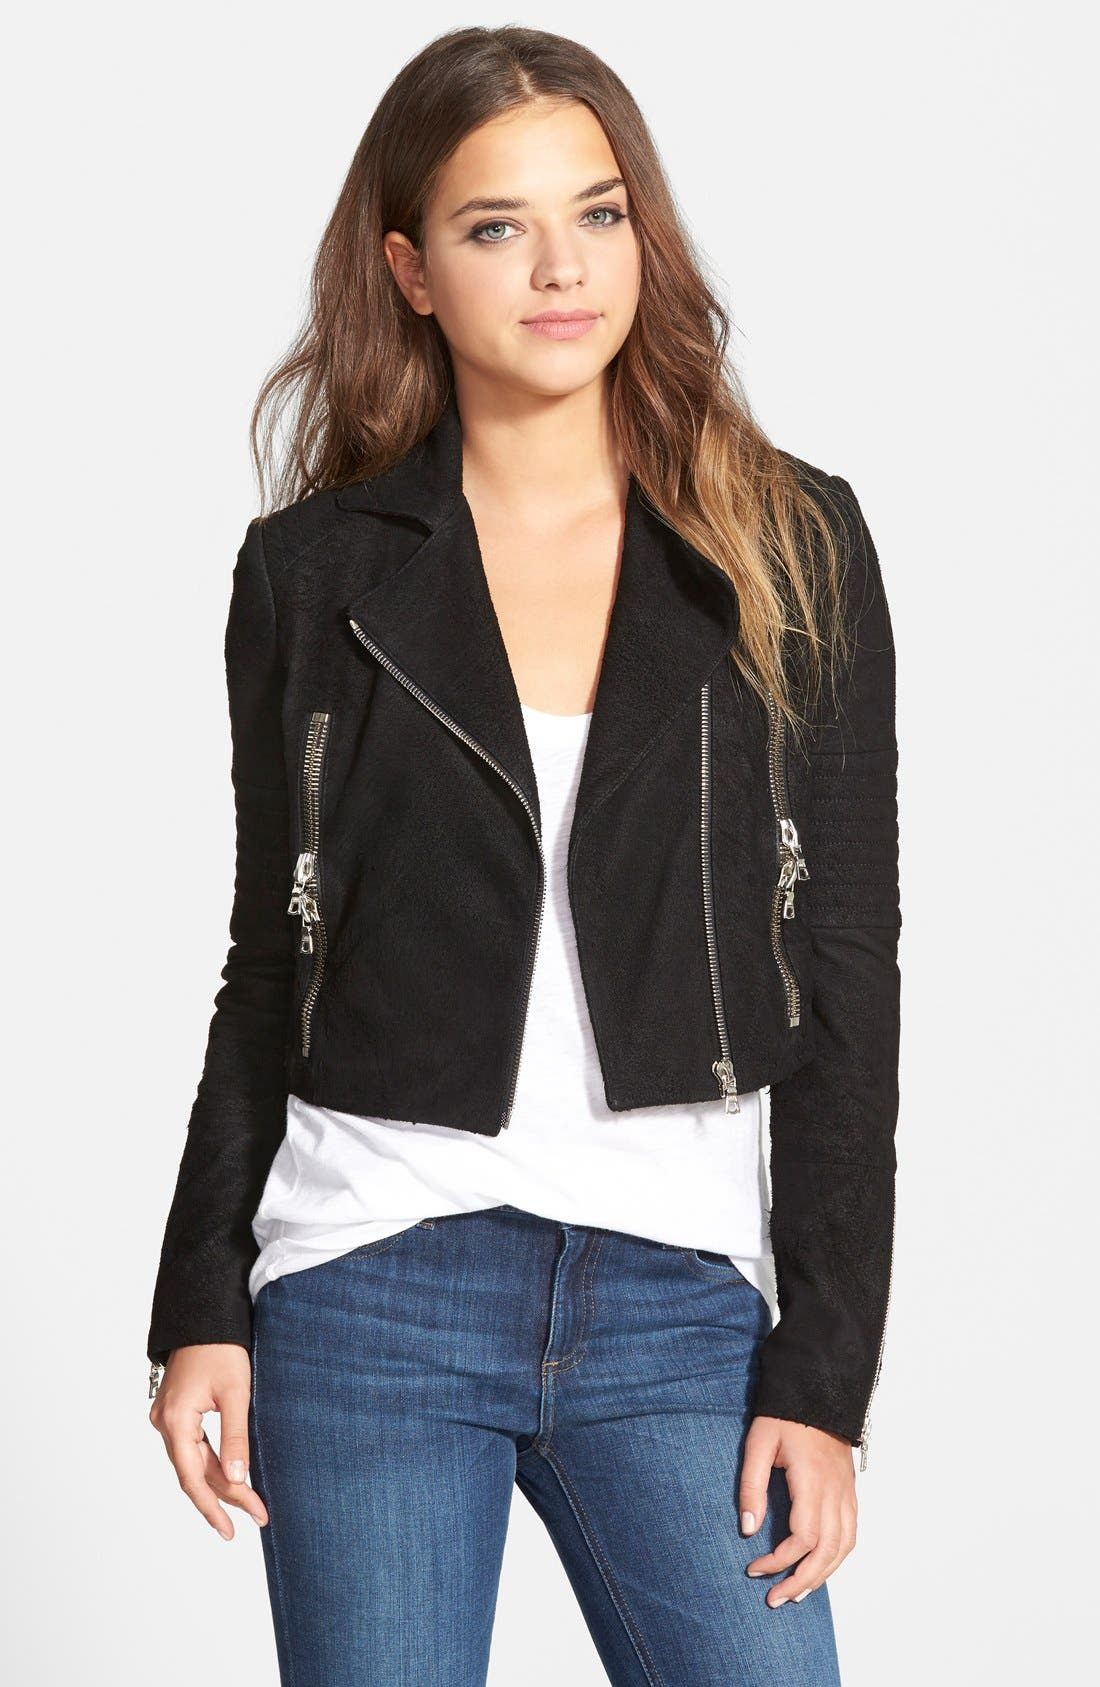 Alternate Image 1 Selected - J Brand Ready-To-Wear 'Aiah' Lambskin Suede Moto Jacket (Nordstrom Exclusive)